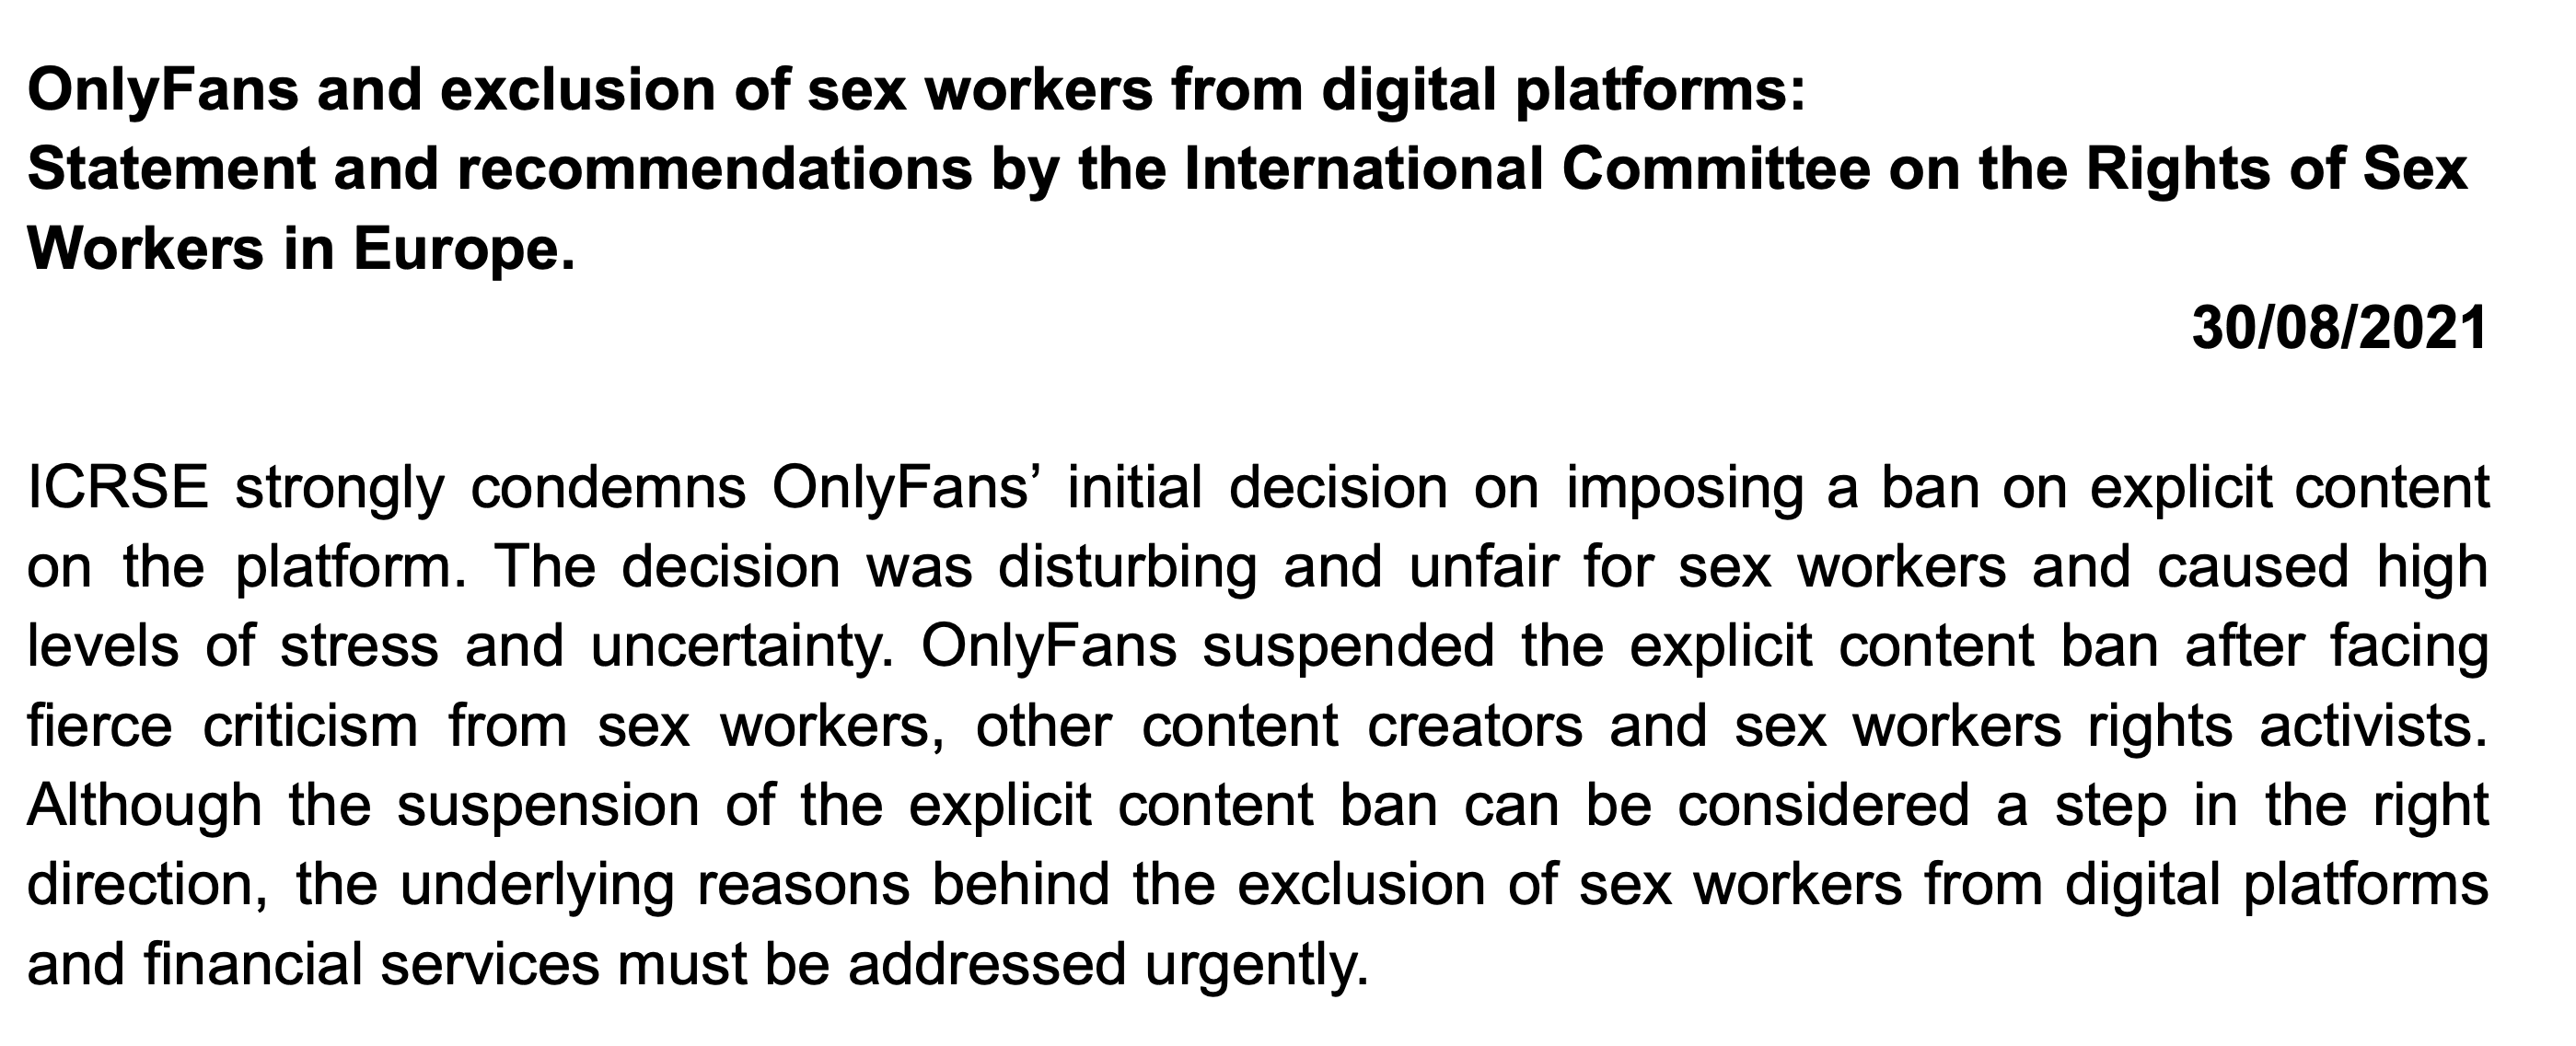 ICRSE STATEMENT REGARDING ONLYFANS' EXPLICIT CONTENT BAN AND THE EXCLUSION OF SEX WORKERS FROM DIGITAL PLATFORMS